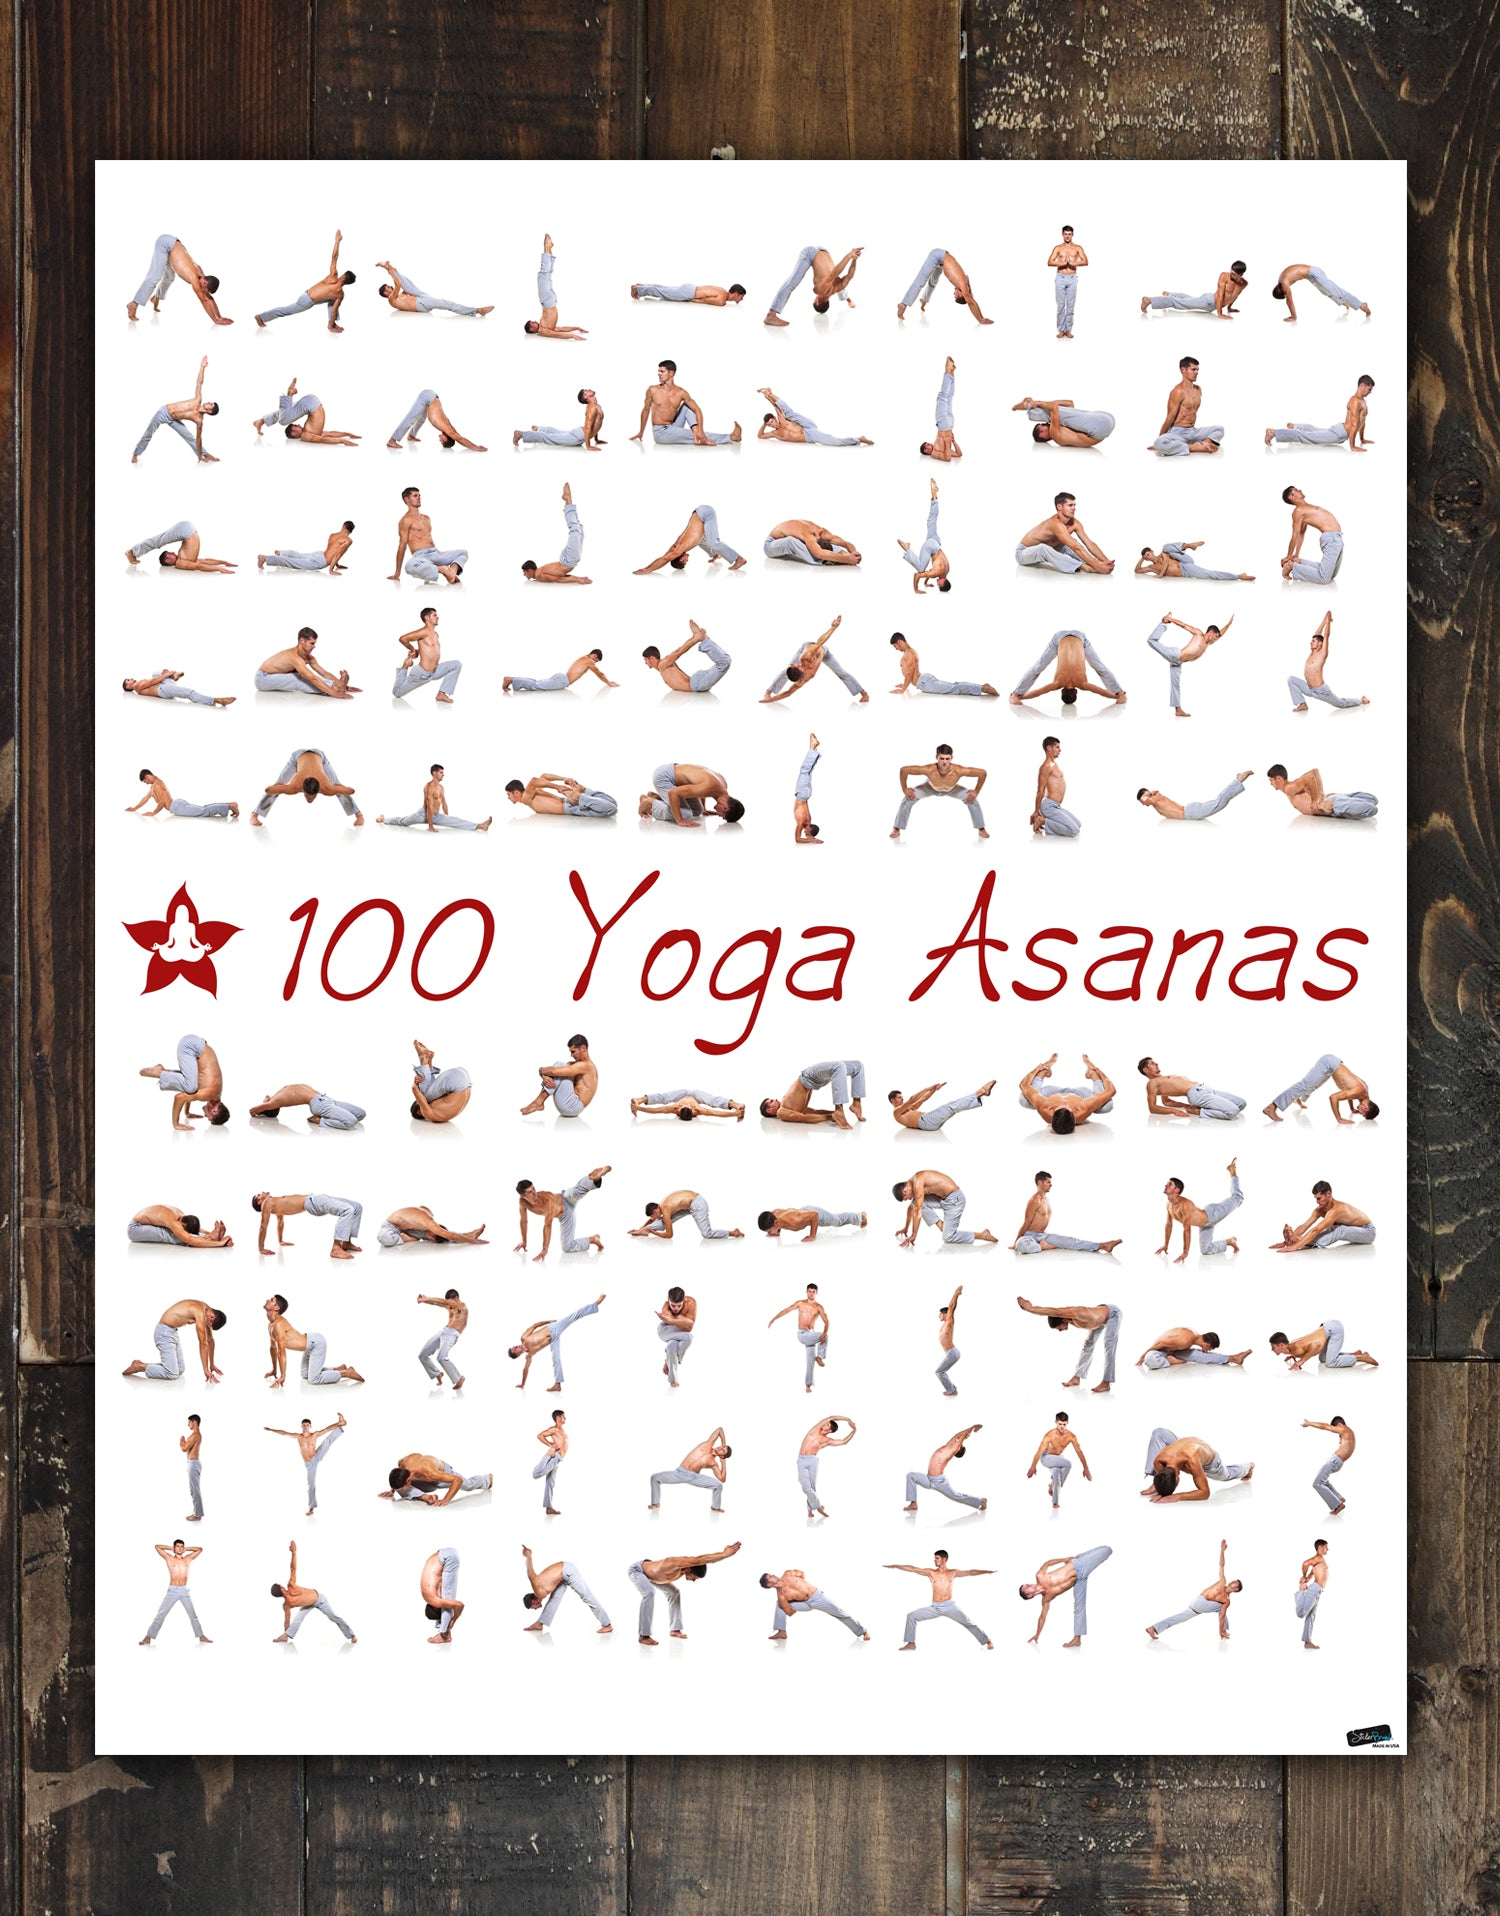 38 Yoga Poses Asanas Poster. Instructional Graphic Poster for